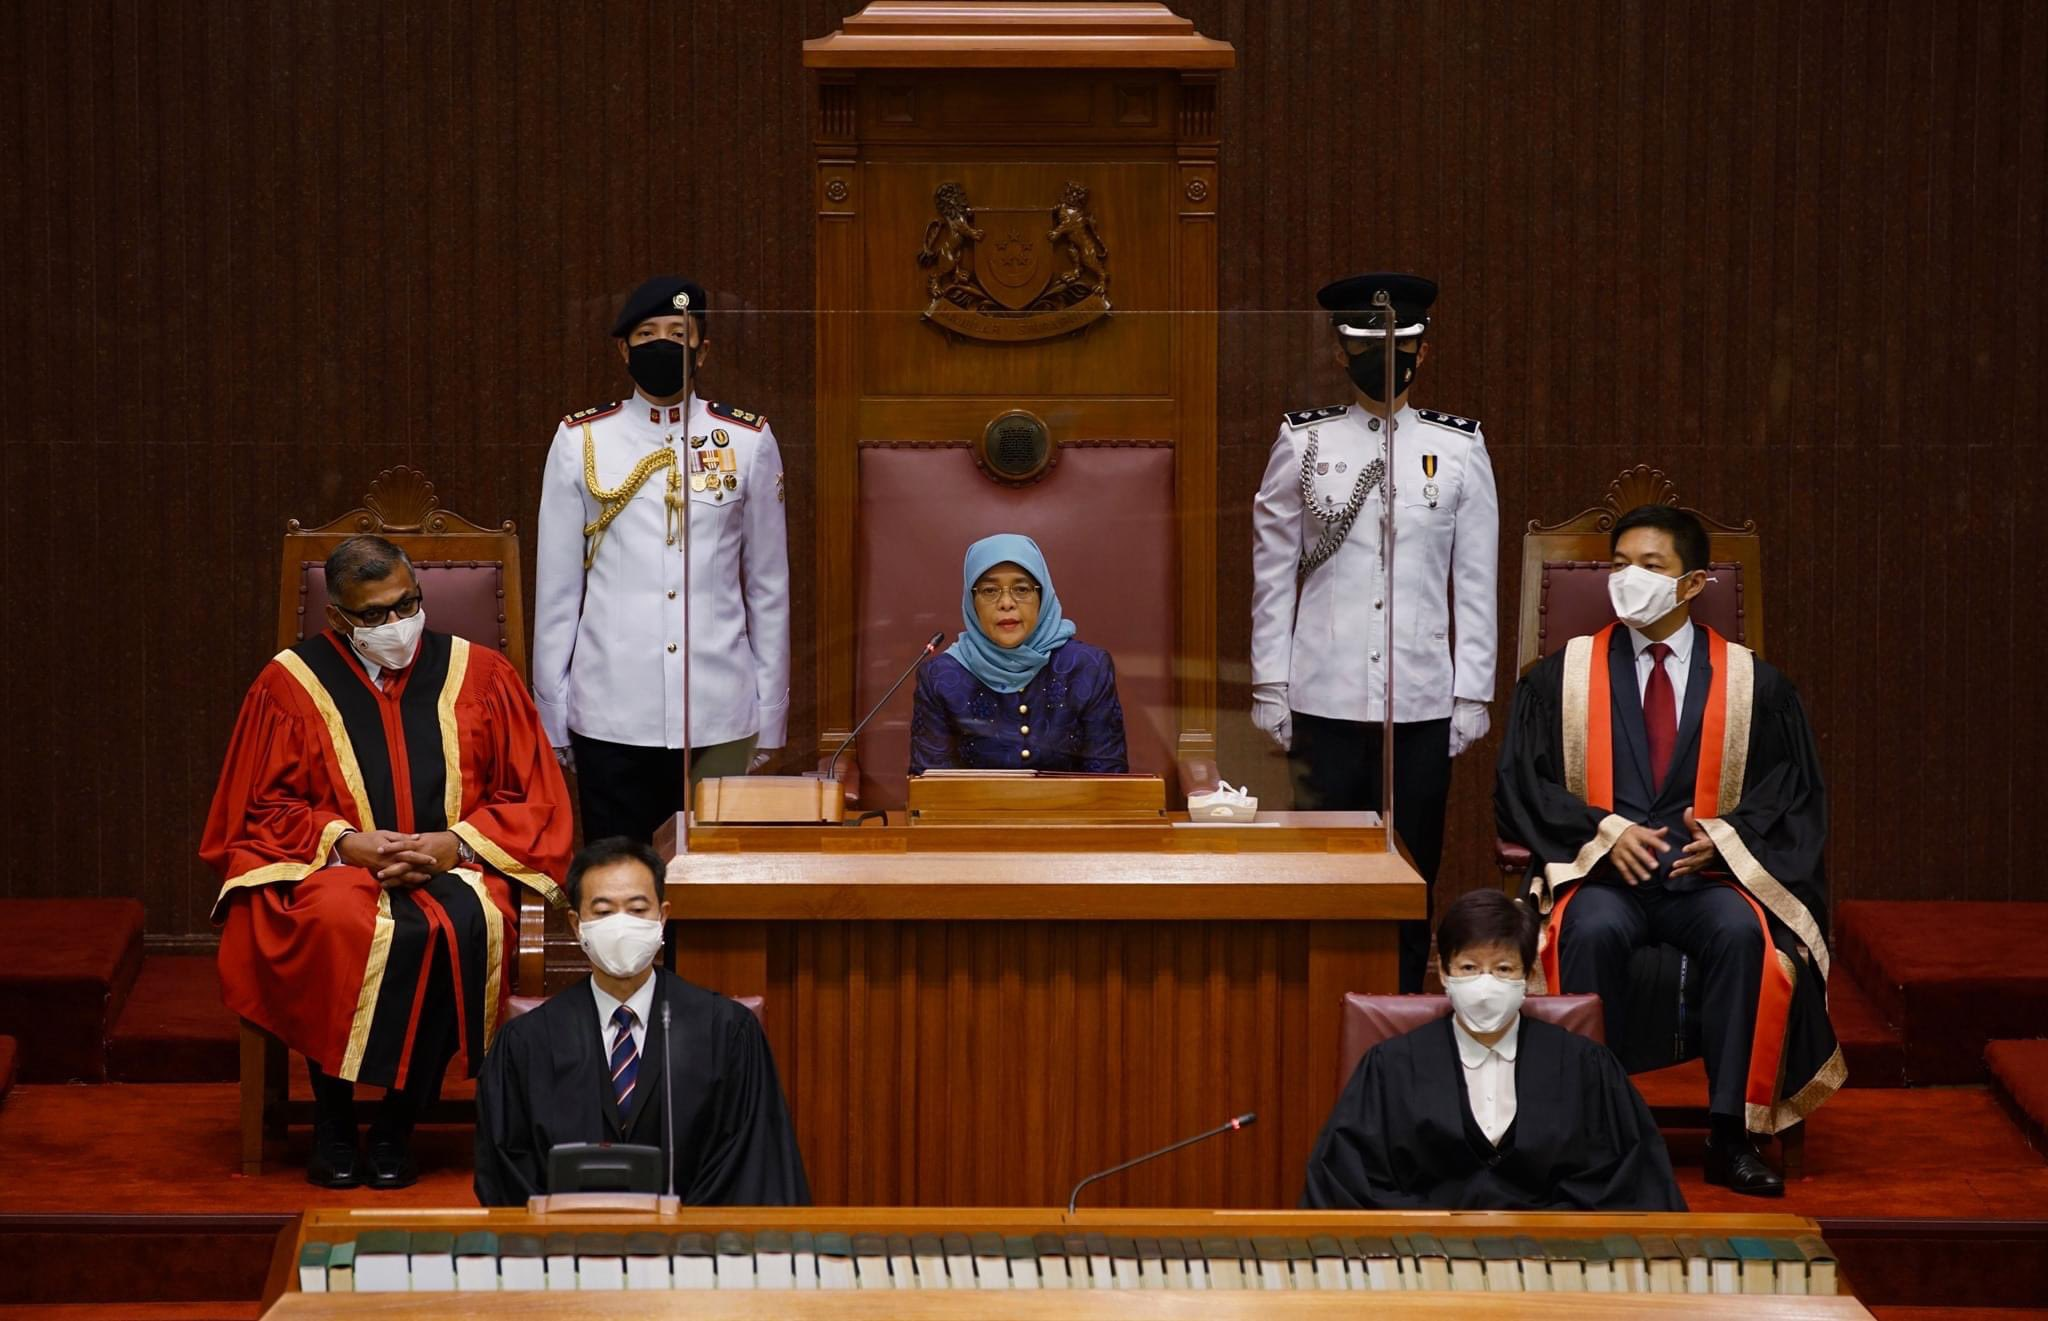 Addressing allegations online that among those who participated in the poll were people studying to become religious teachers, Halimah said the community has to